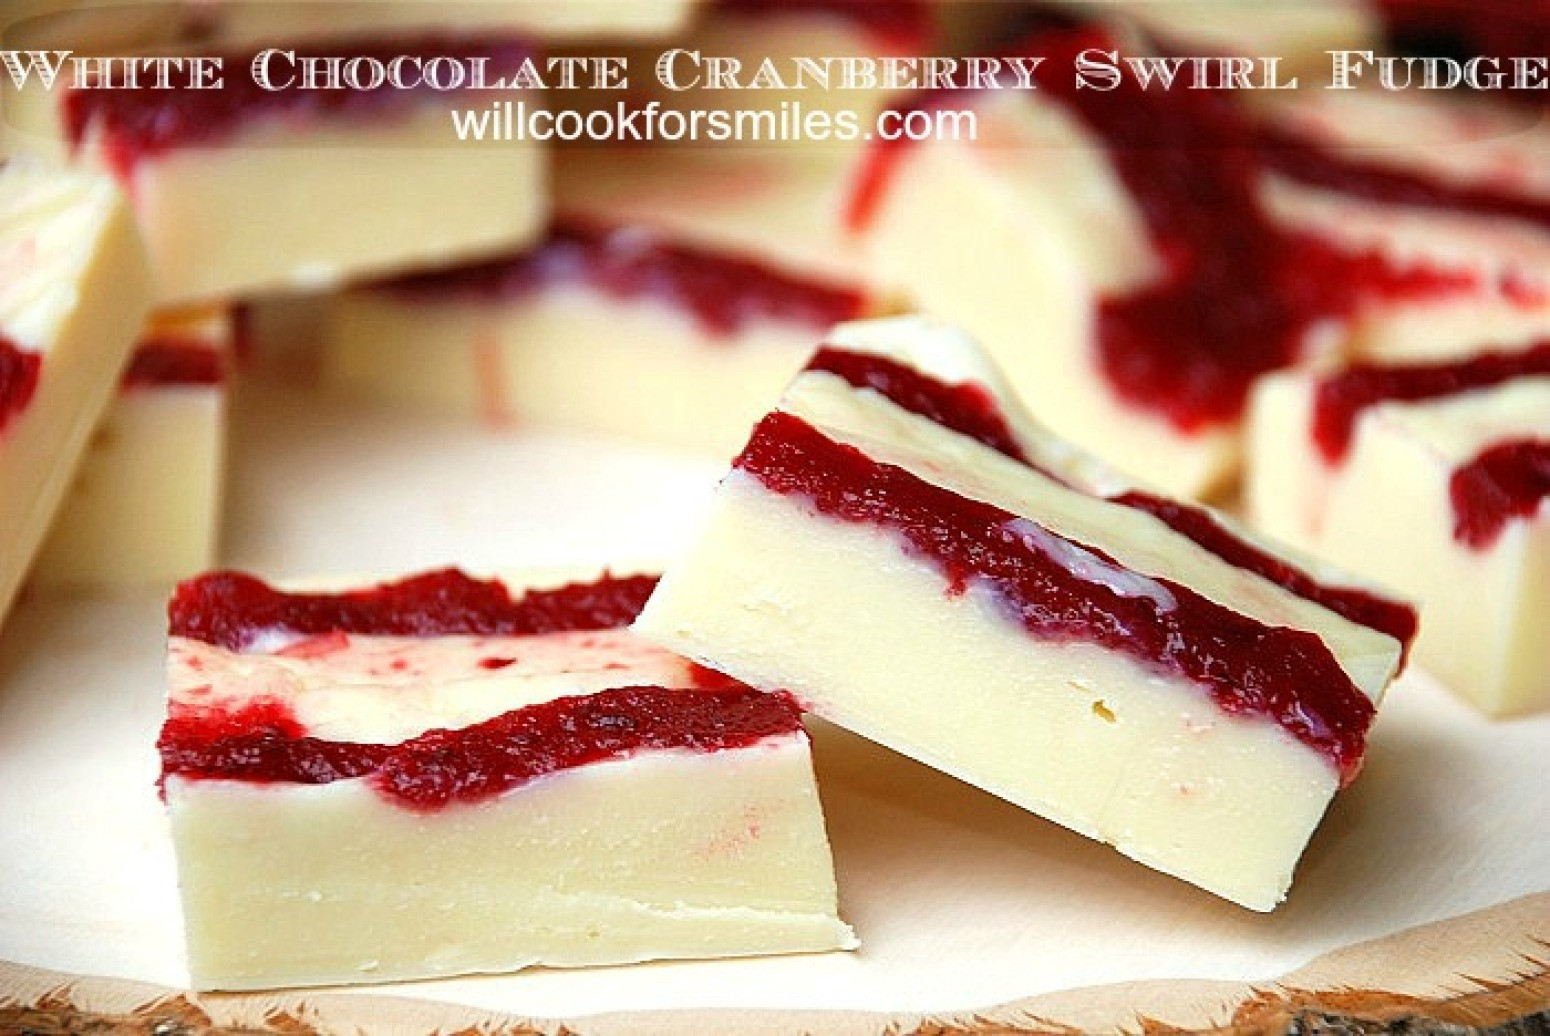 Christmas Swirl Fudge  White Chocolate Cranberry Swirl Fudge Recipe 2